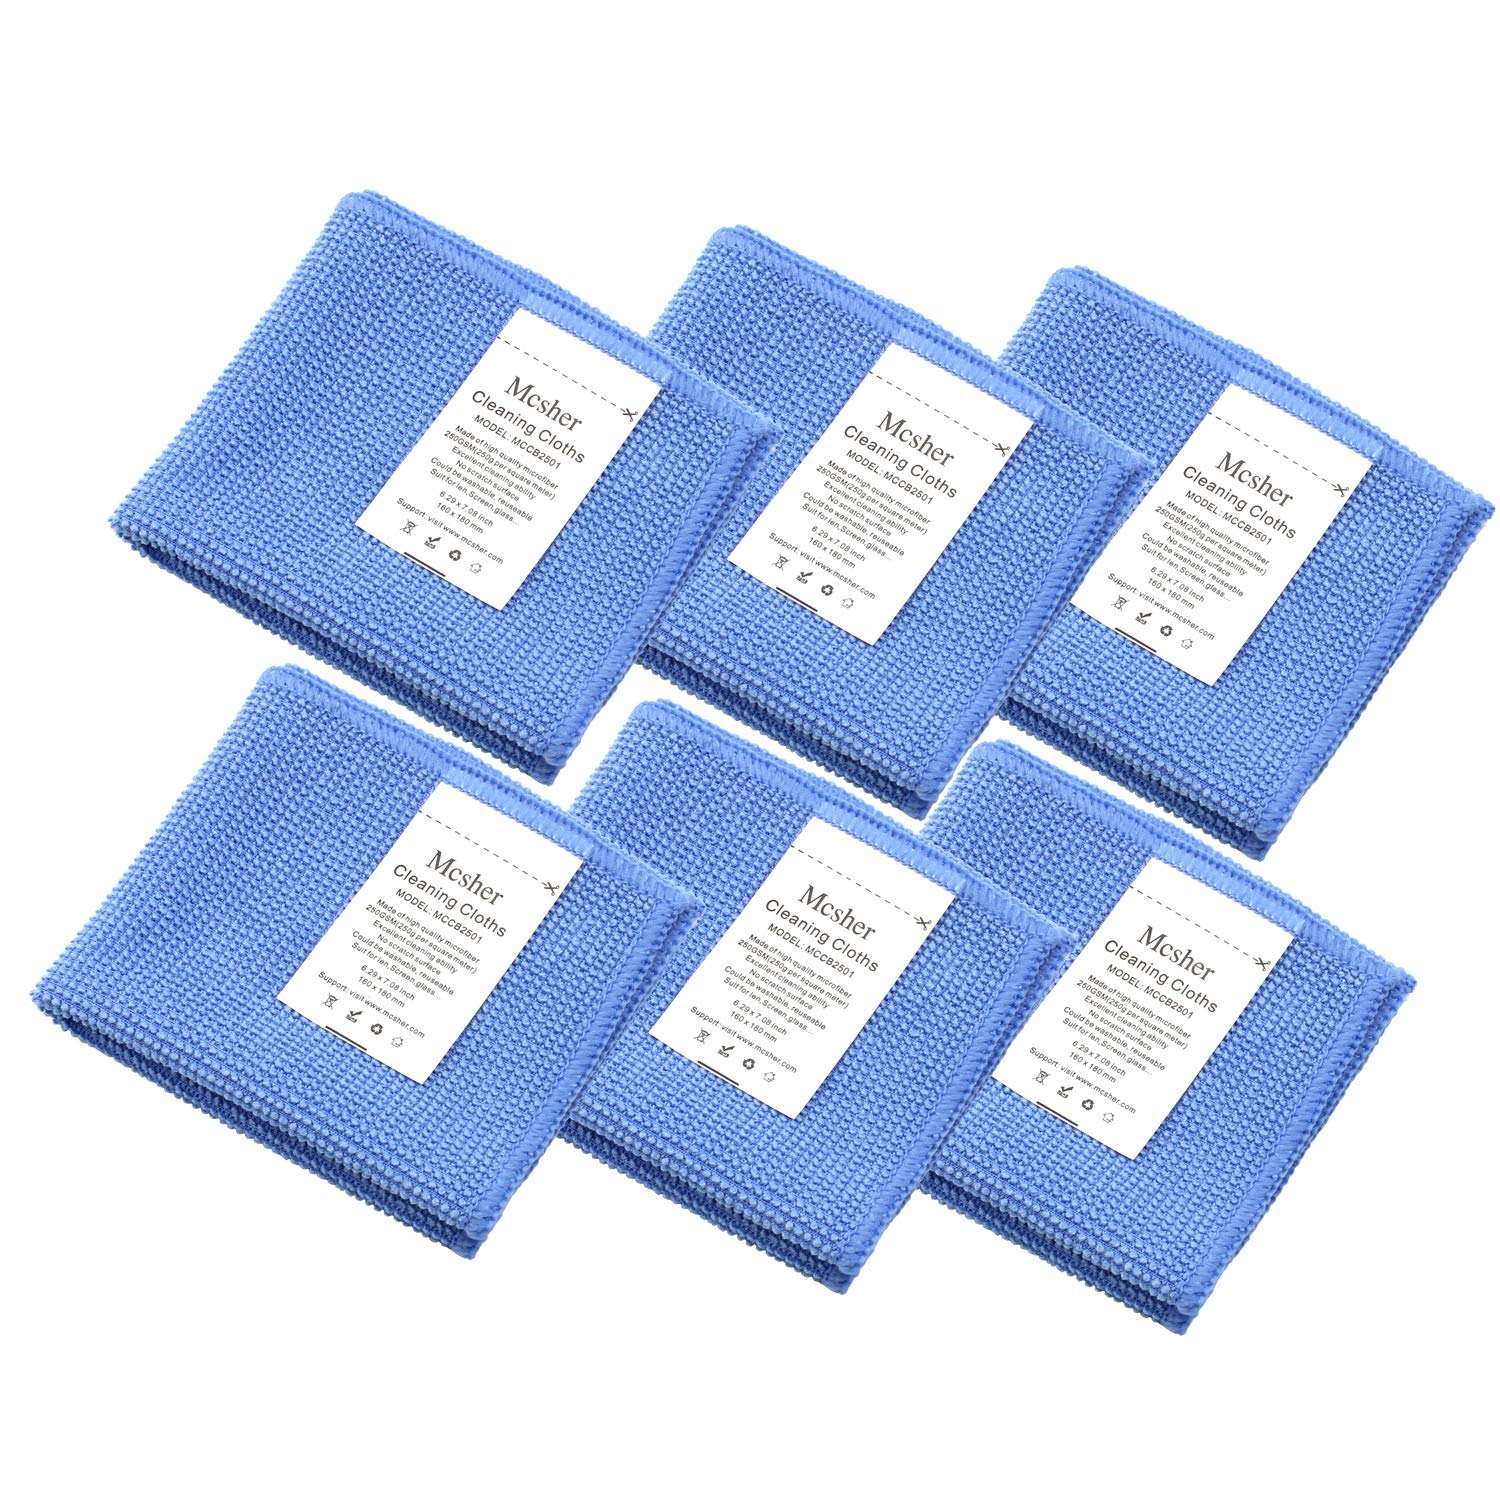 Blue Mcsher Microfiber Cleaning Cloths 6x 7 Inch 6 Pack